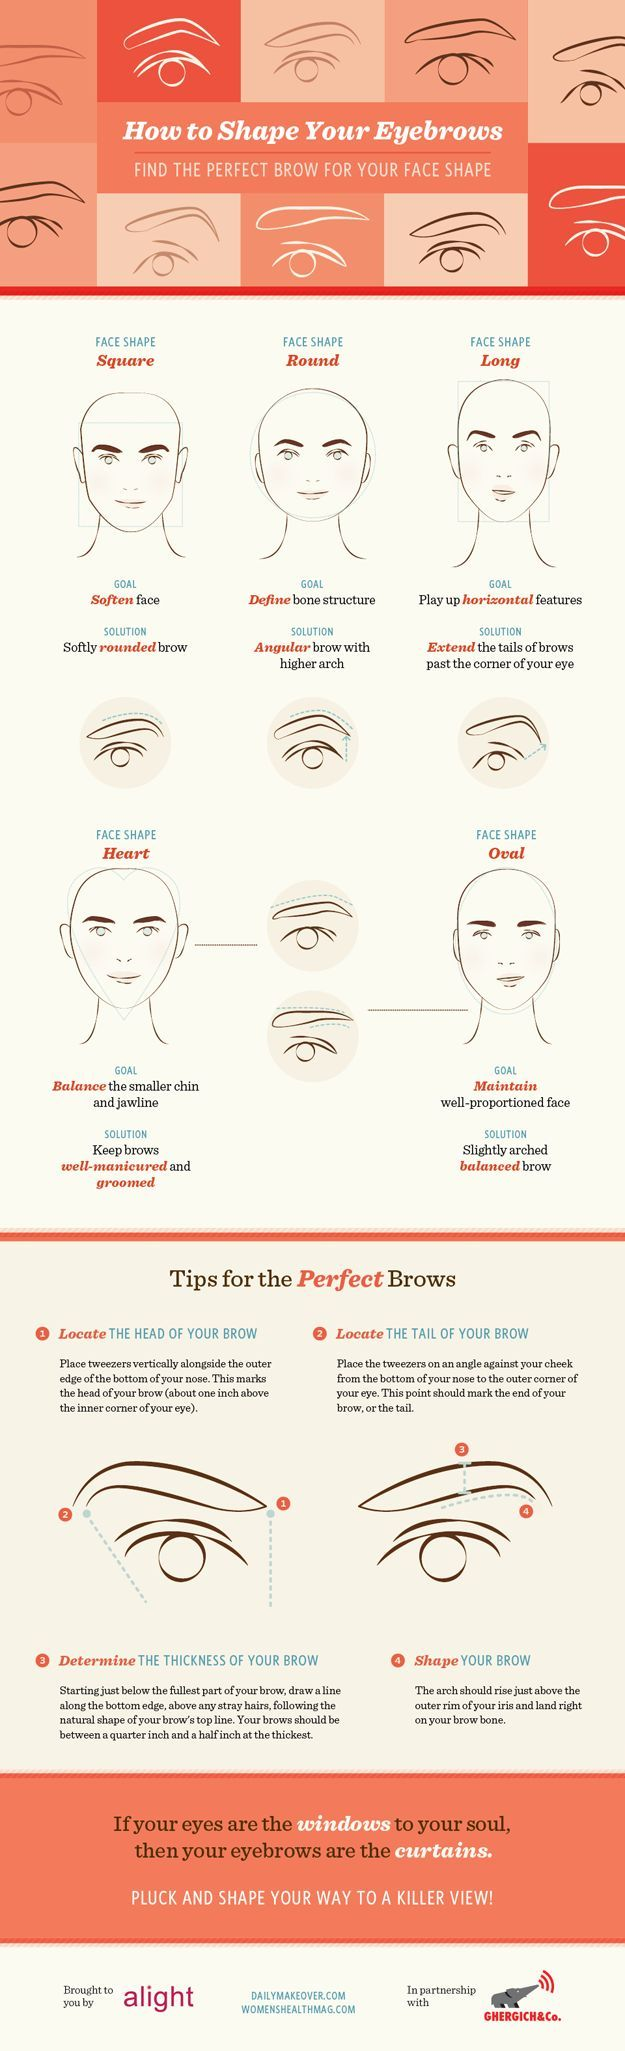 Eyebrow Tutorial: Finding The Right Brow Shape For Your Face | Beauty Tips And Tricks by Makeup Tutorials at  http://makeuptutorials.com/eyebrow-tutorial-finding-right-brow-shape-face/